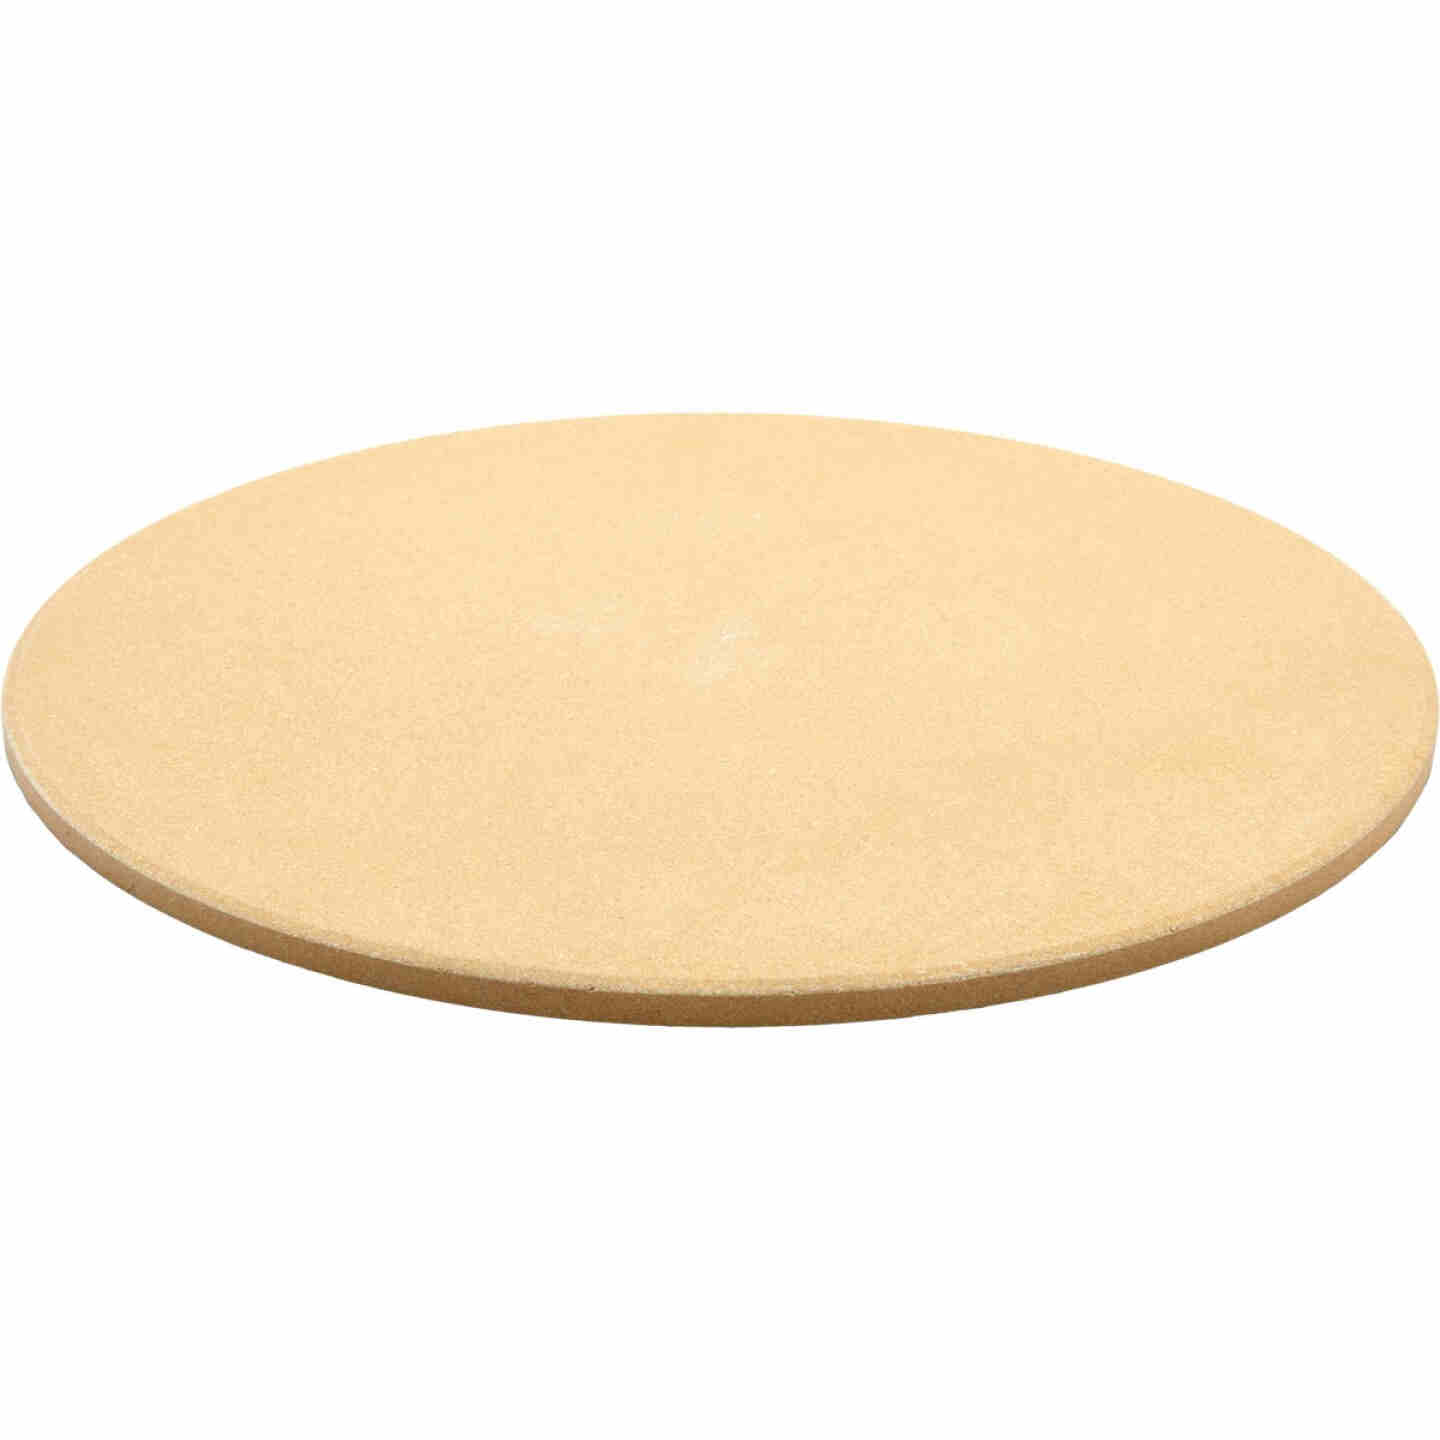 GrillPro 13 In. Ceramic Composite Pizza Stone Image 1